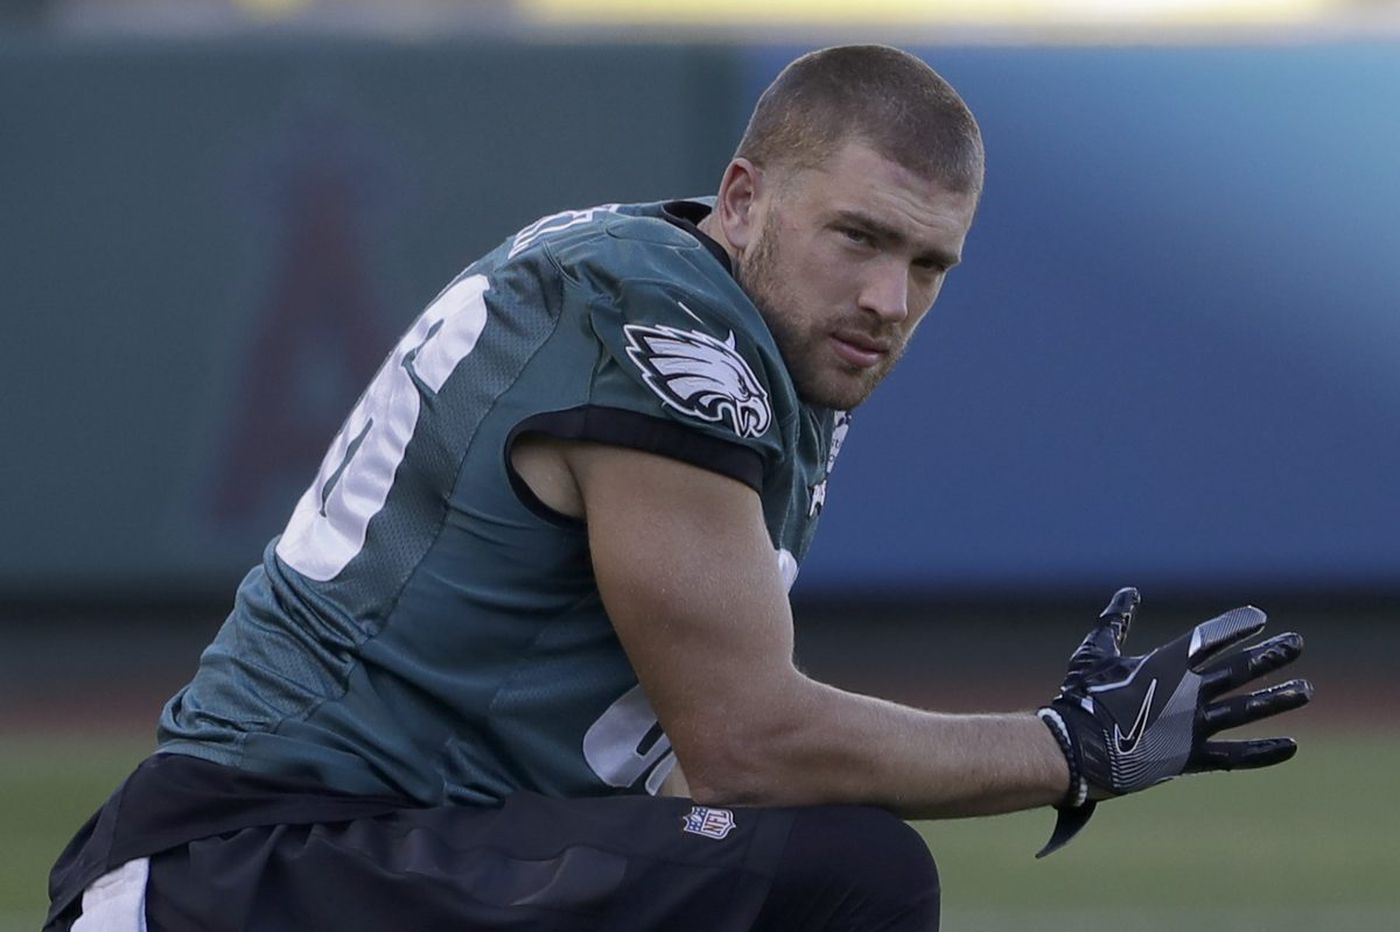 Eagles TE Zach Ertz returns to practice on limited basis, has not yet cleared concussion protocol